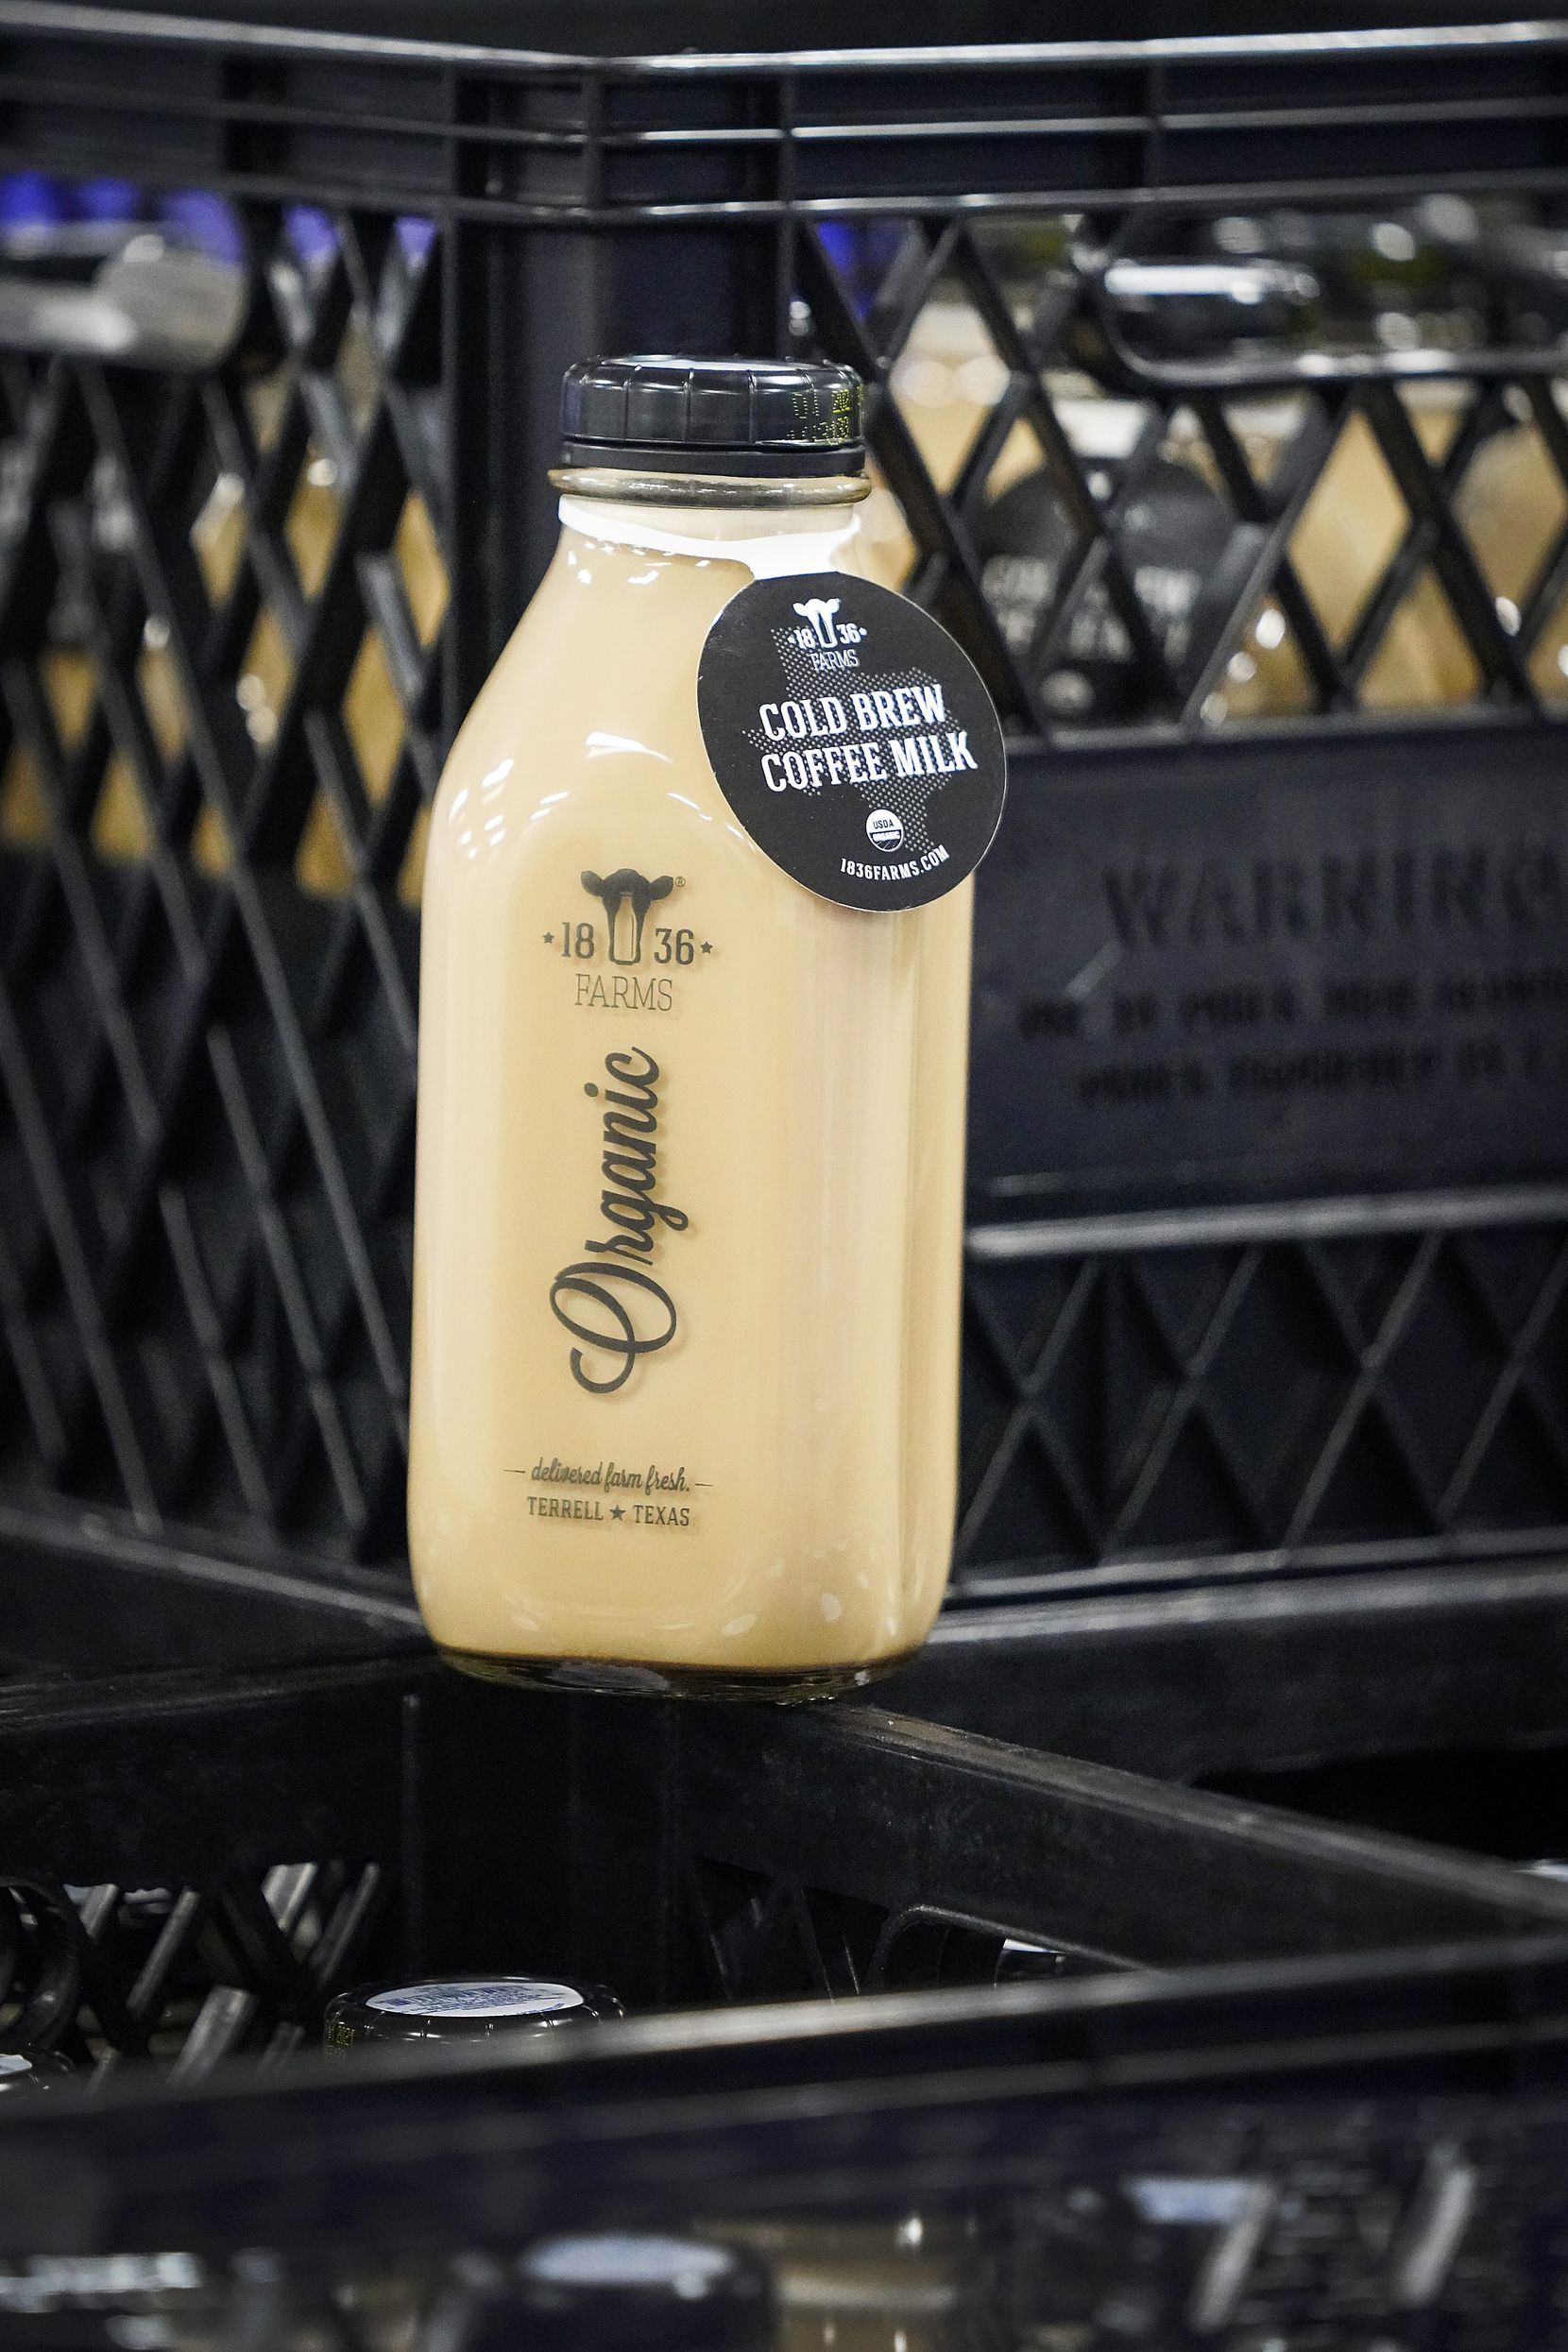 A bottle of cold brew coffee milk photographed in the cooler at 1836 Farms in Terrell on June 15, 2021.